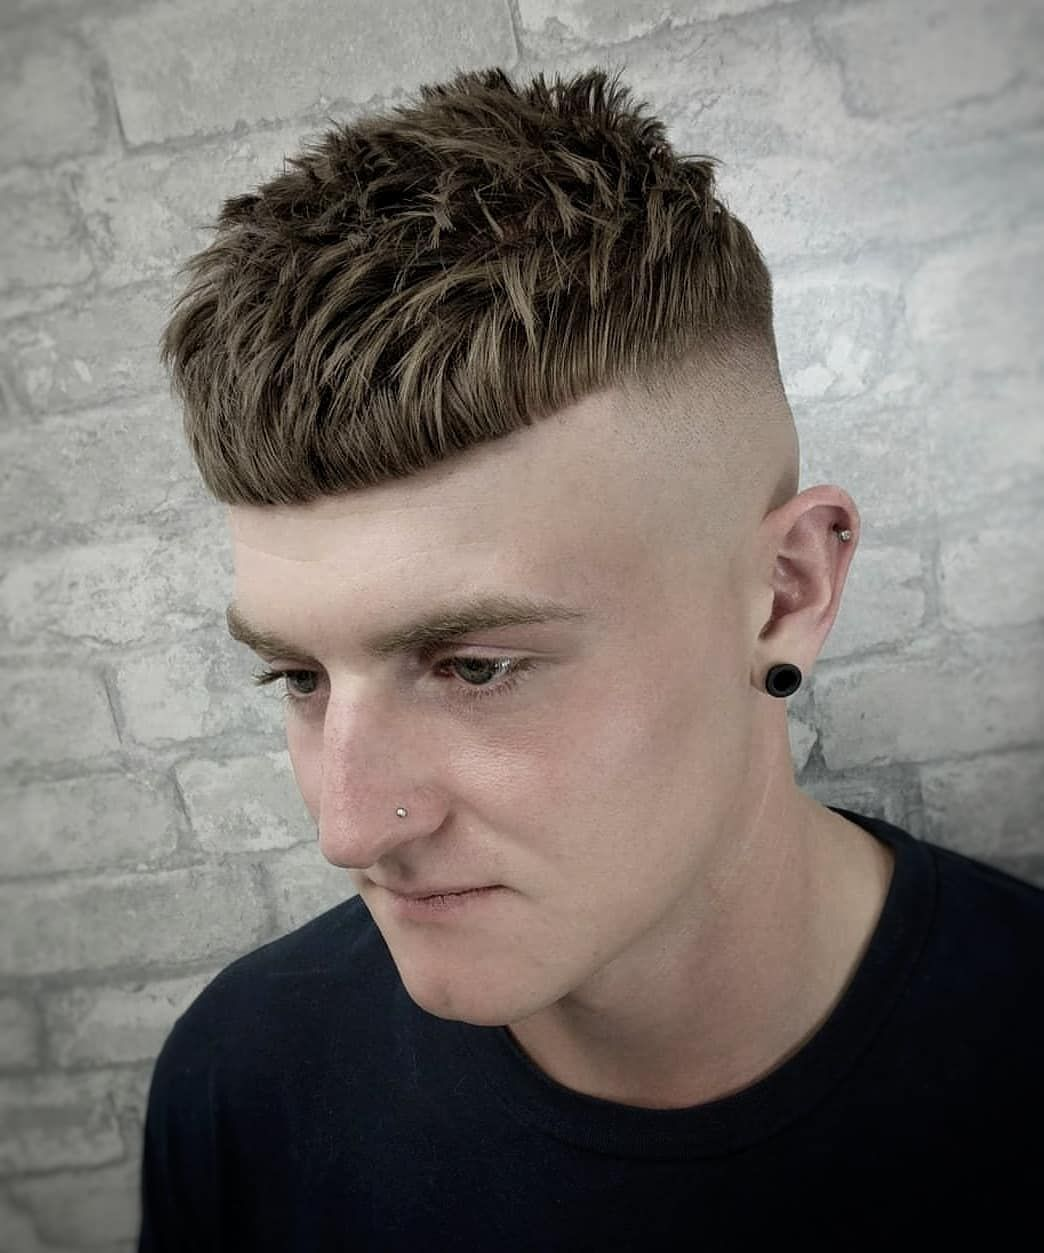 Mens Haircuts 2019 Mens Hipster Hairstyles In 2019 Hair Cuts